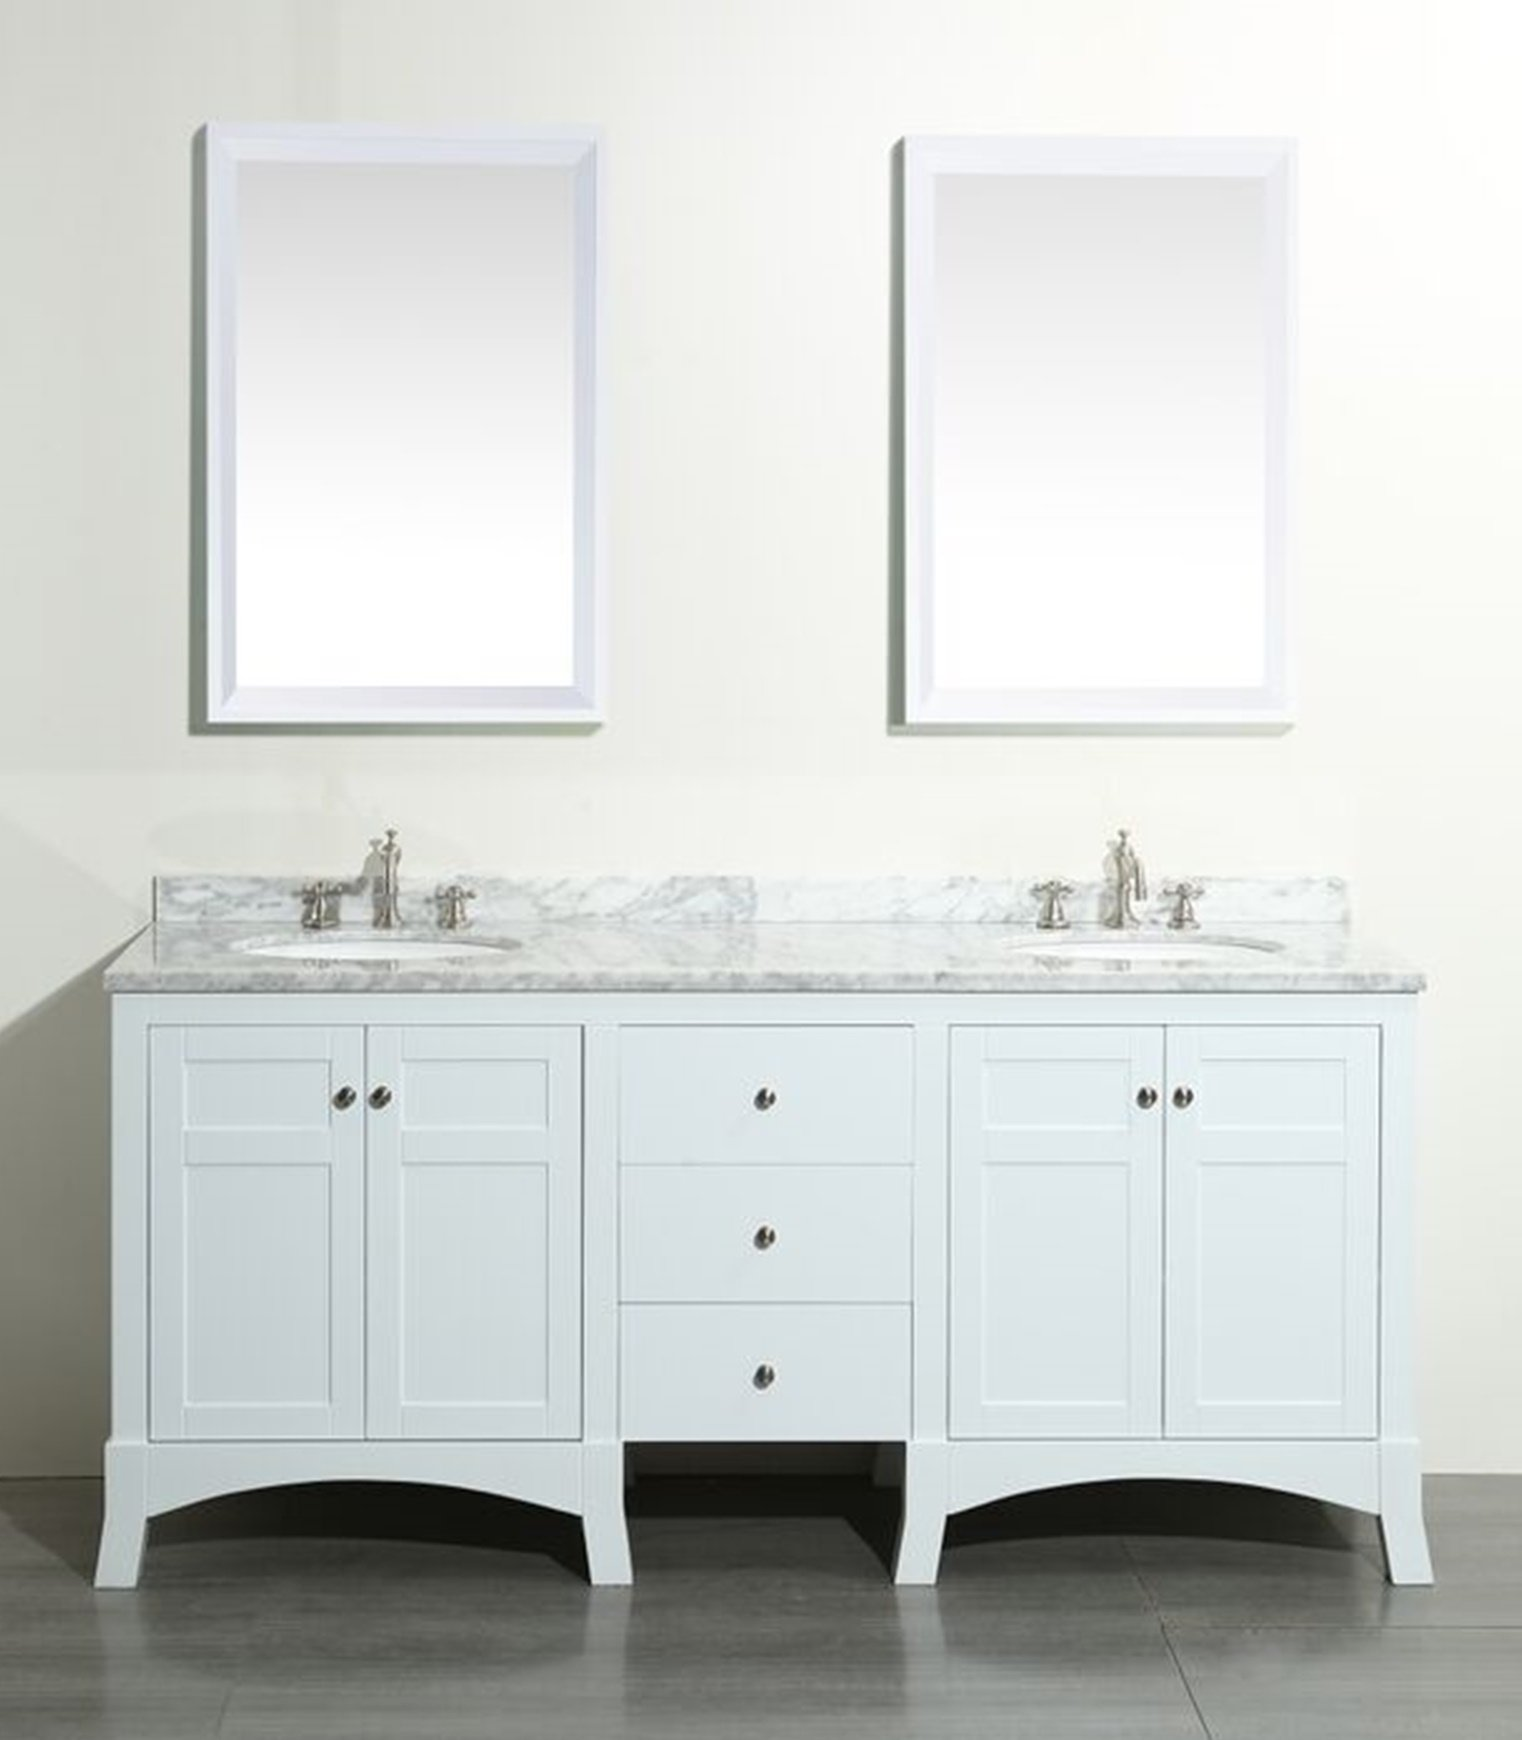 Bathroom Vanity Cabinets | Home Art Tile Kitchen and Bath